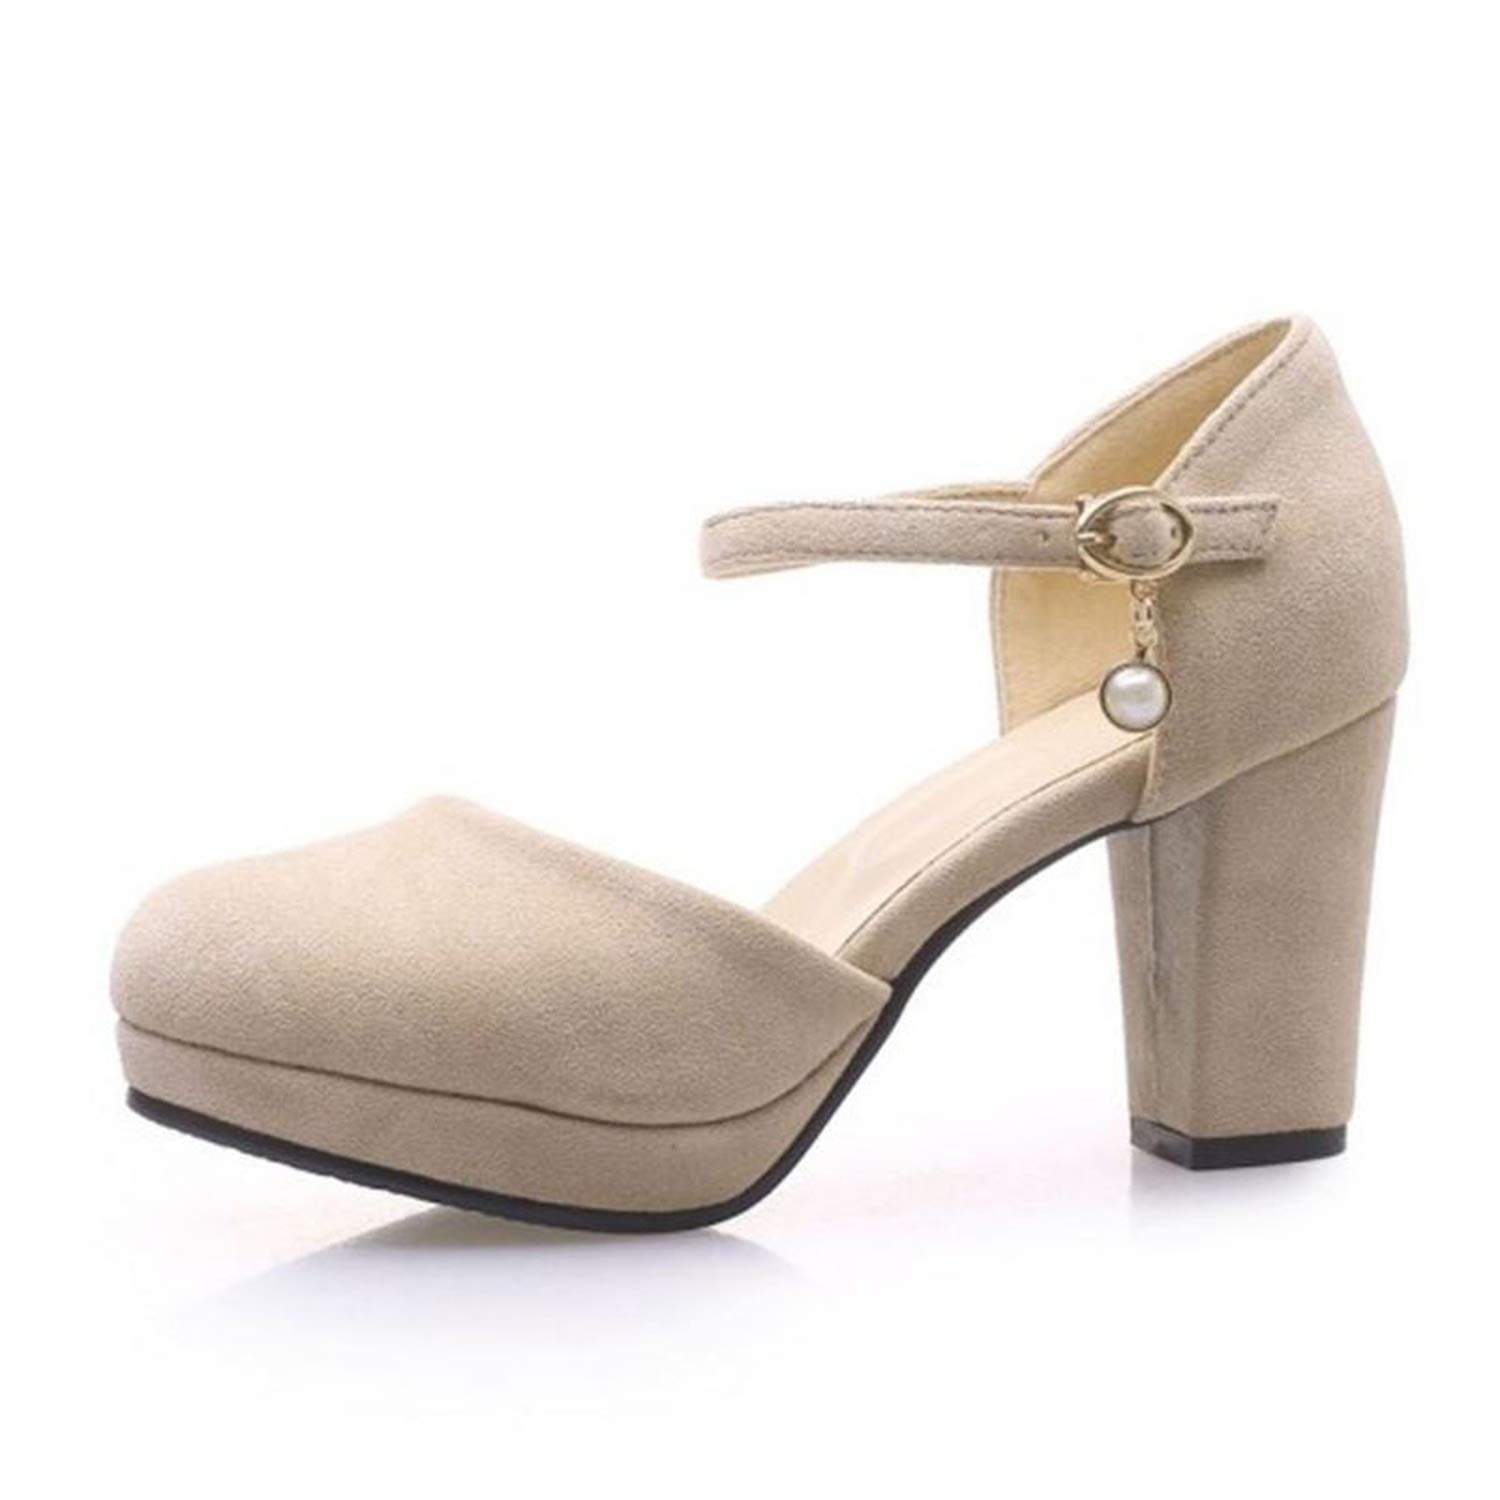 Concise Women Sandals Round Toe Solid Color Thick High Heels Ankle Strap Women Daily Outdoor